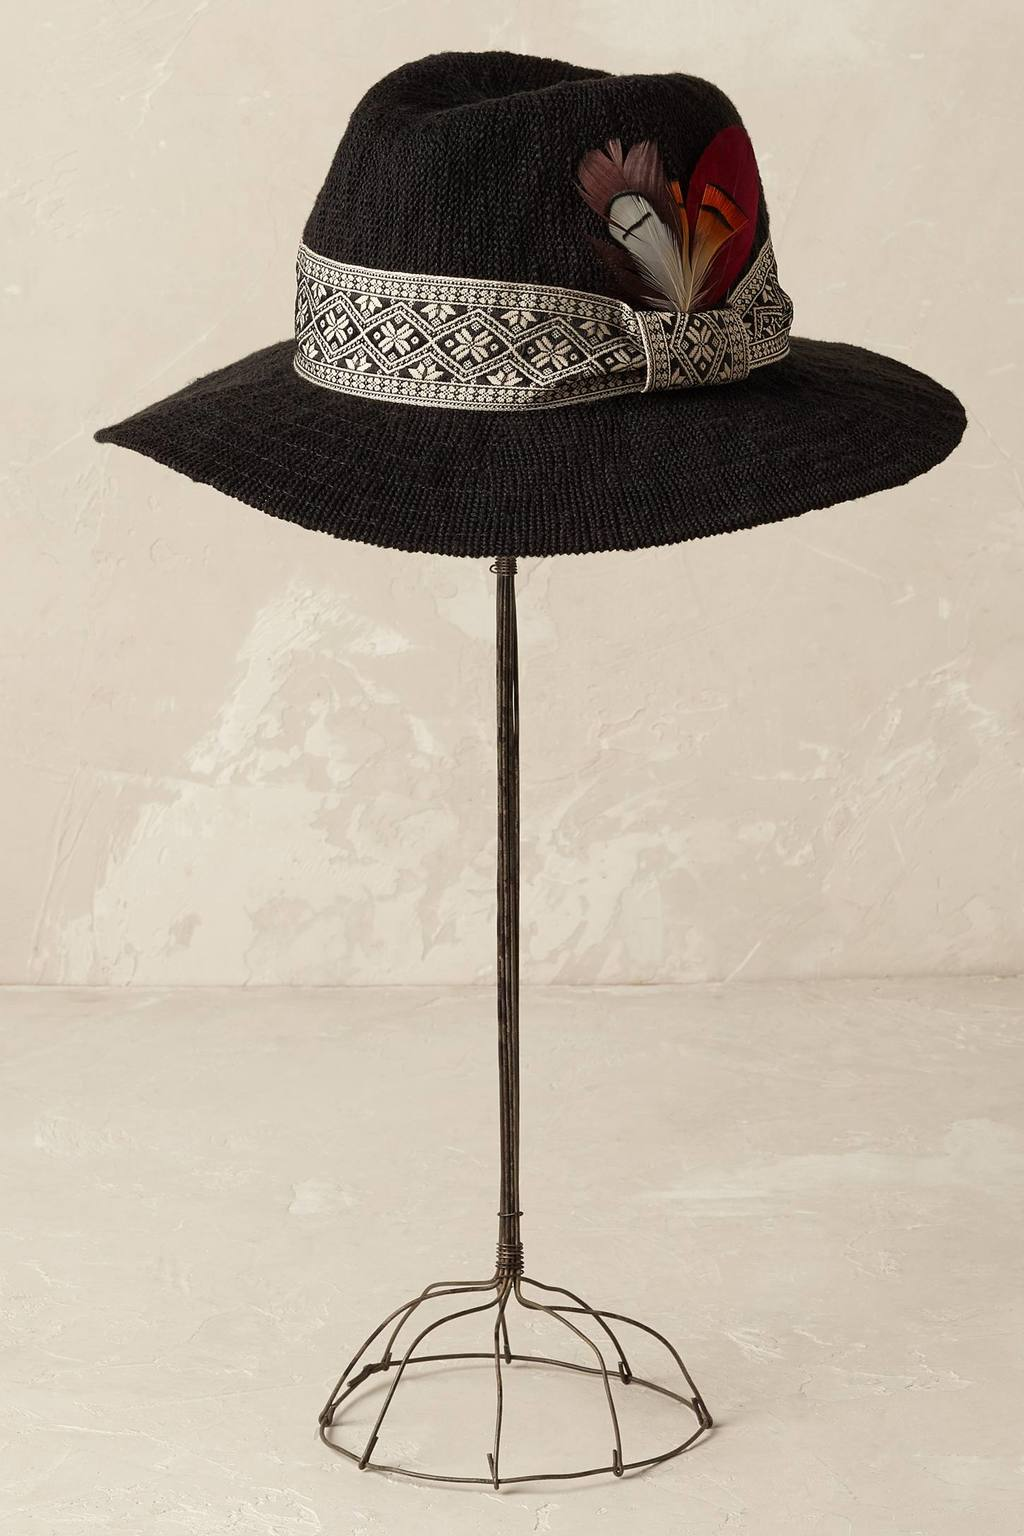 Charlie Rancher Hat - predominant colour: black; occasions: casual, holiday; type of pattern: standard; style: small brimmed; size: standard; material: macrame/raffia/straw; pattern: plain; season: s/s 2016; wardrobe: holiday